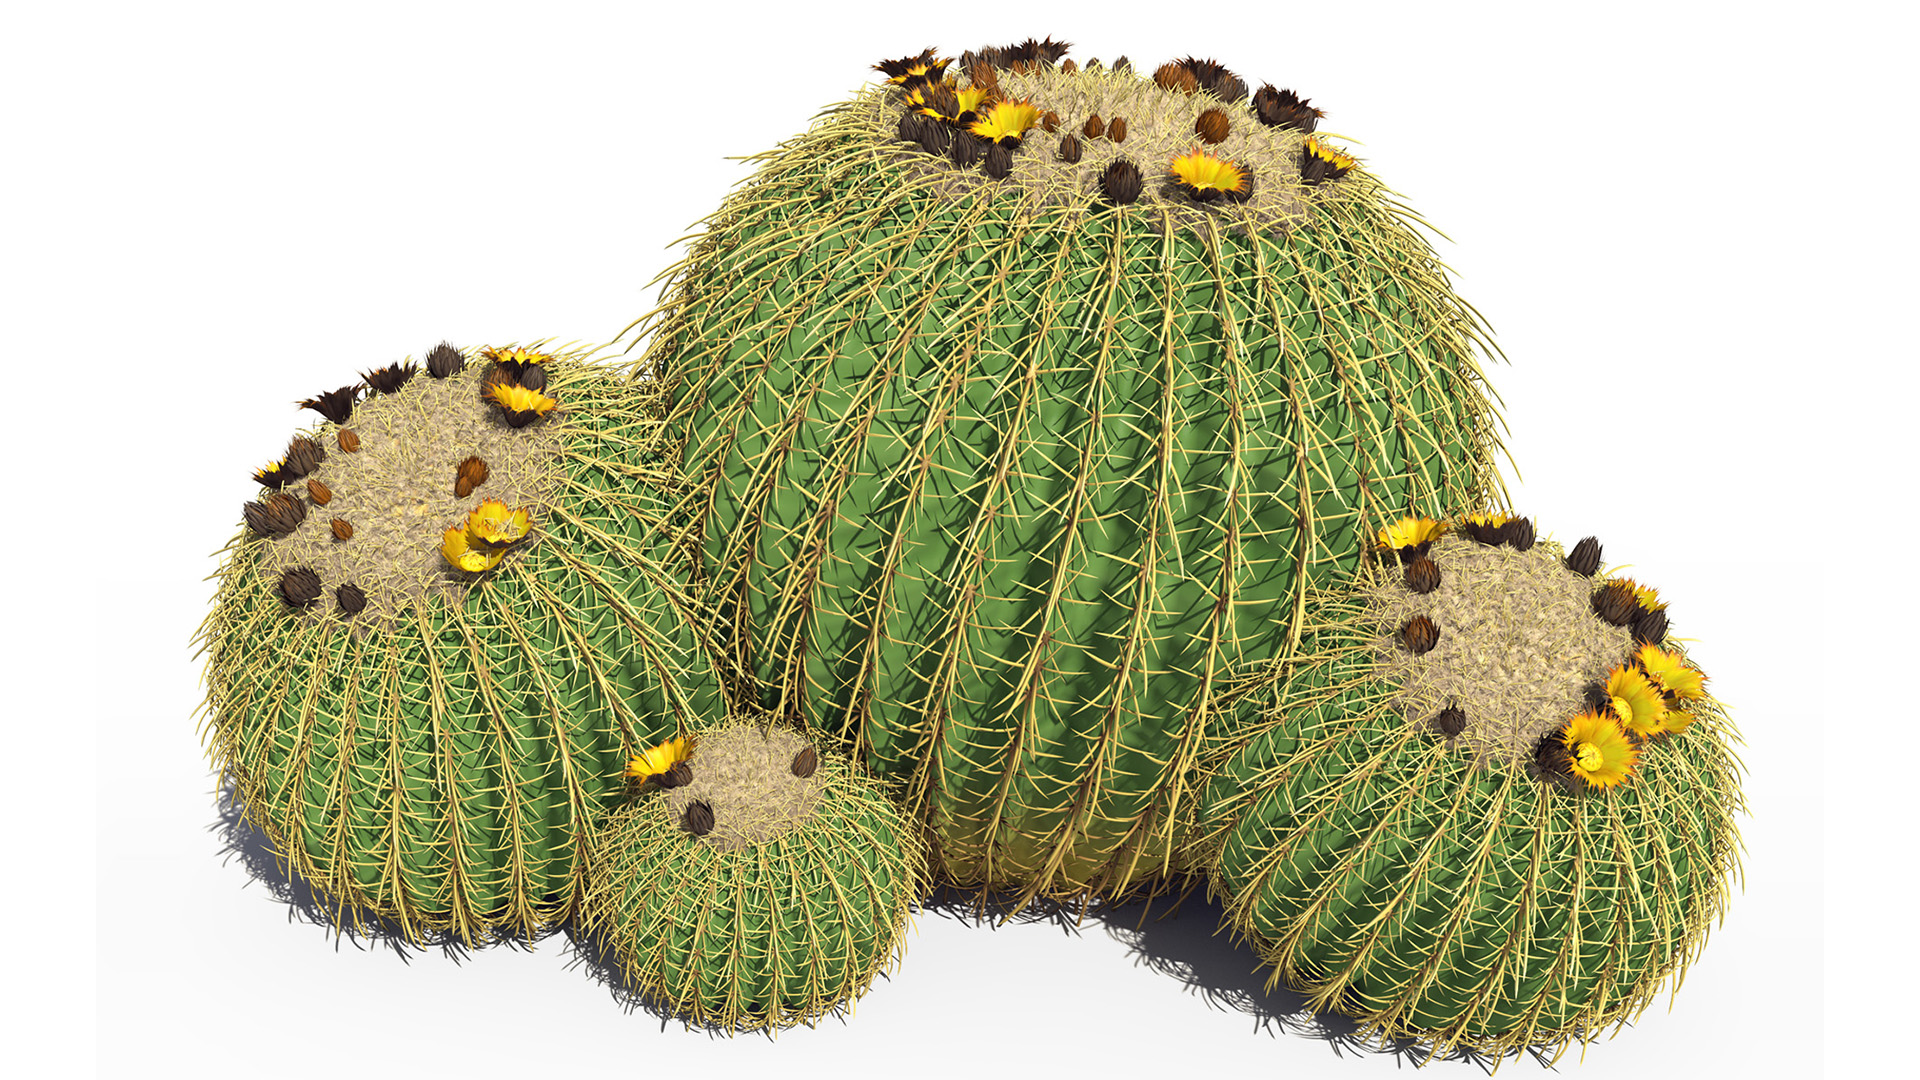 3D model of the Golden barrel cactus Echinocactus grusonii different presets